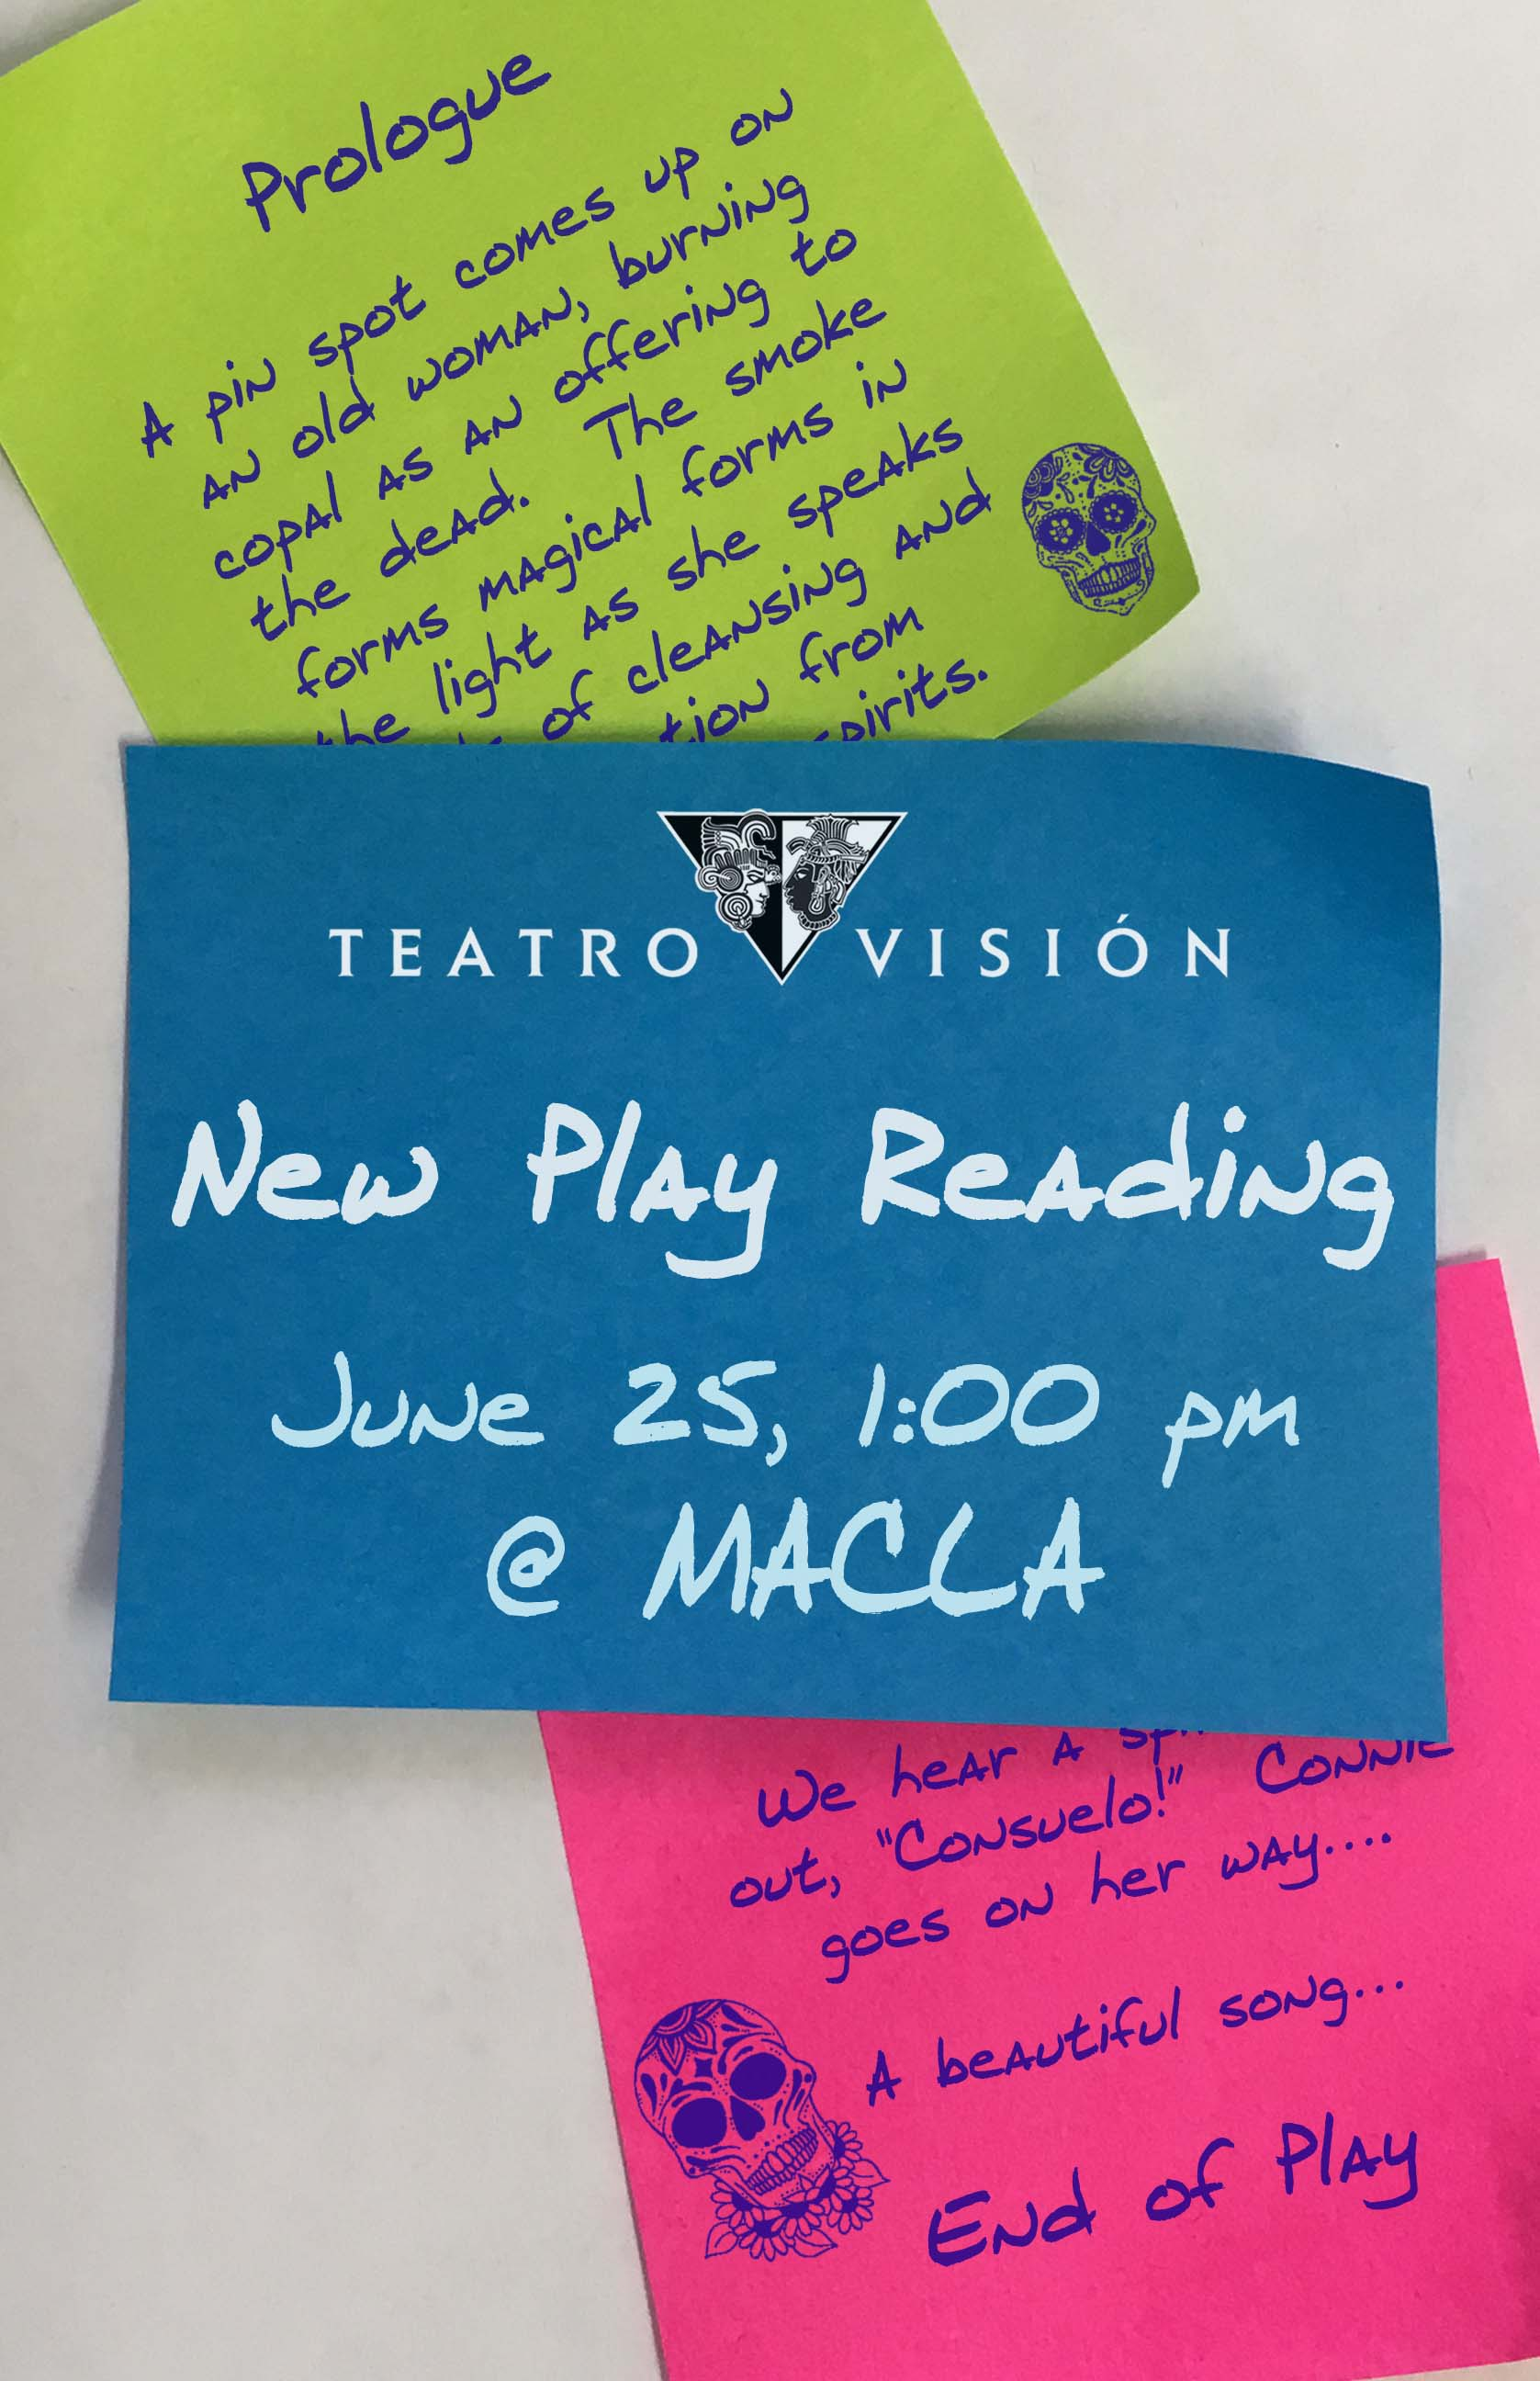 Marketing postcard for a new play reading